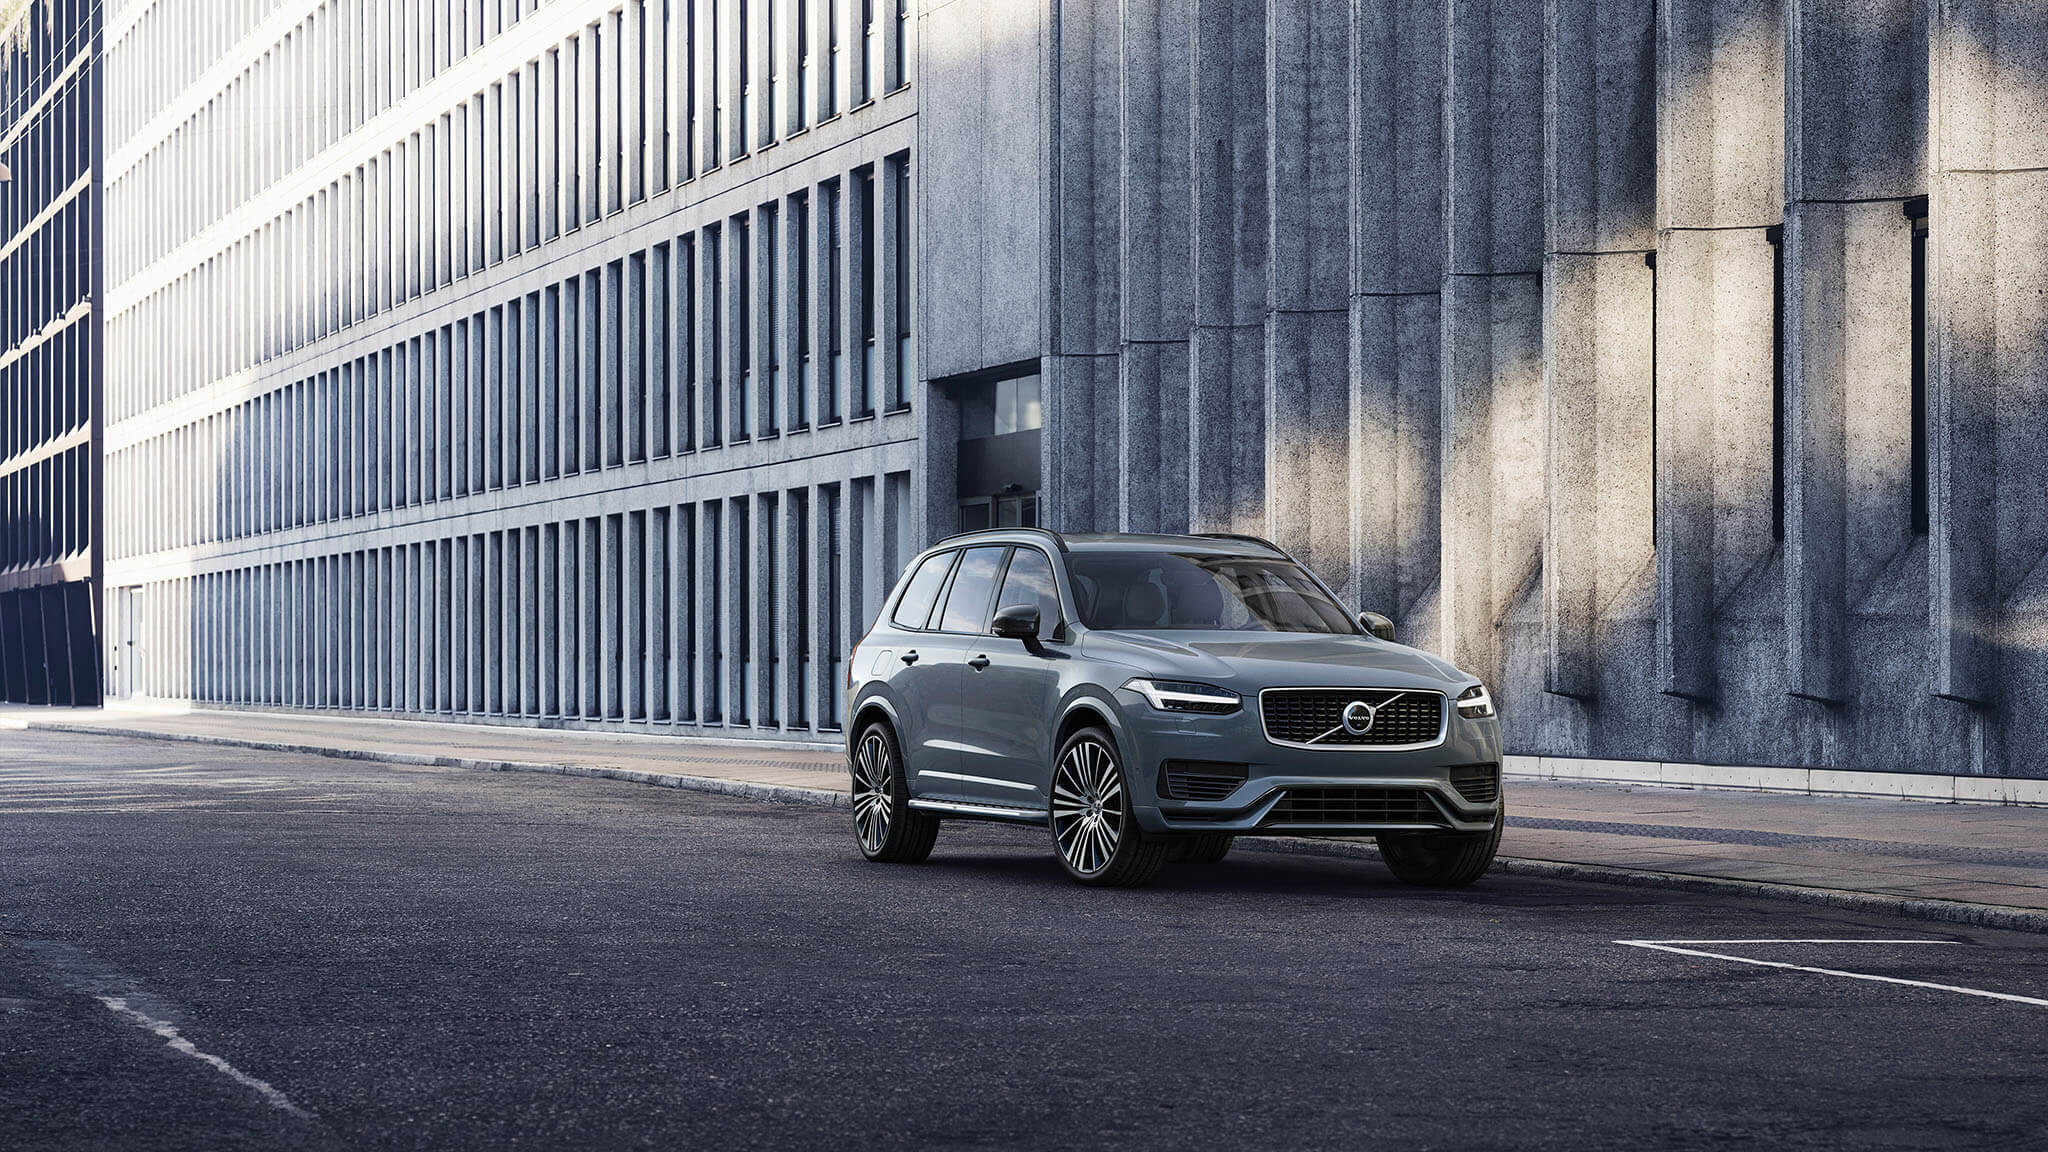 Accessories for the XC90 Image